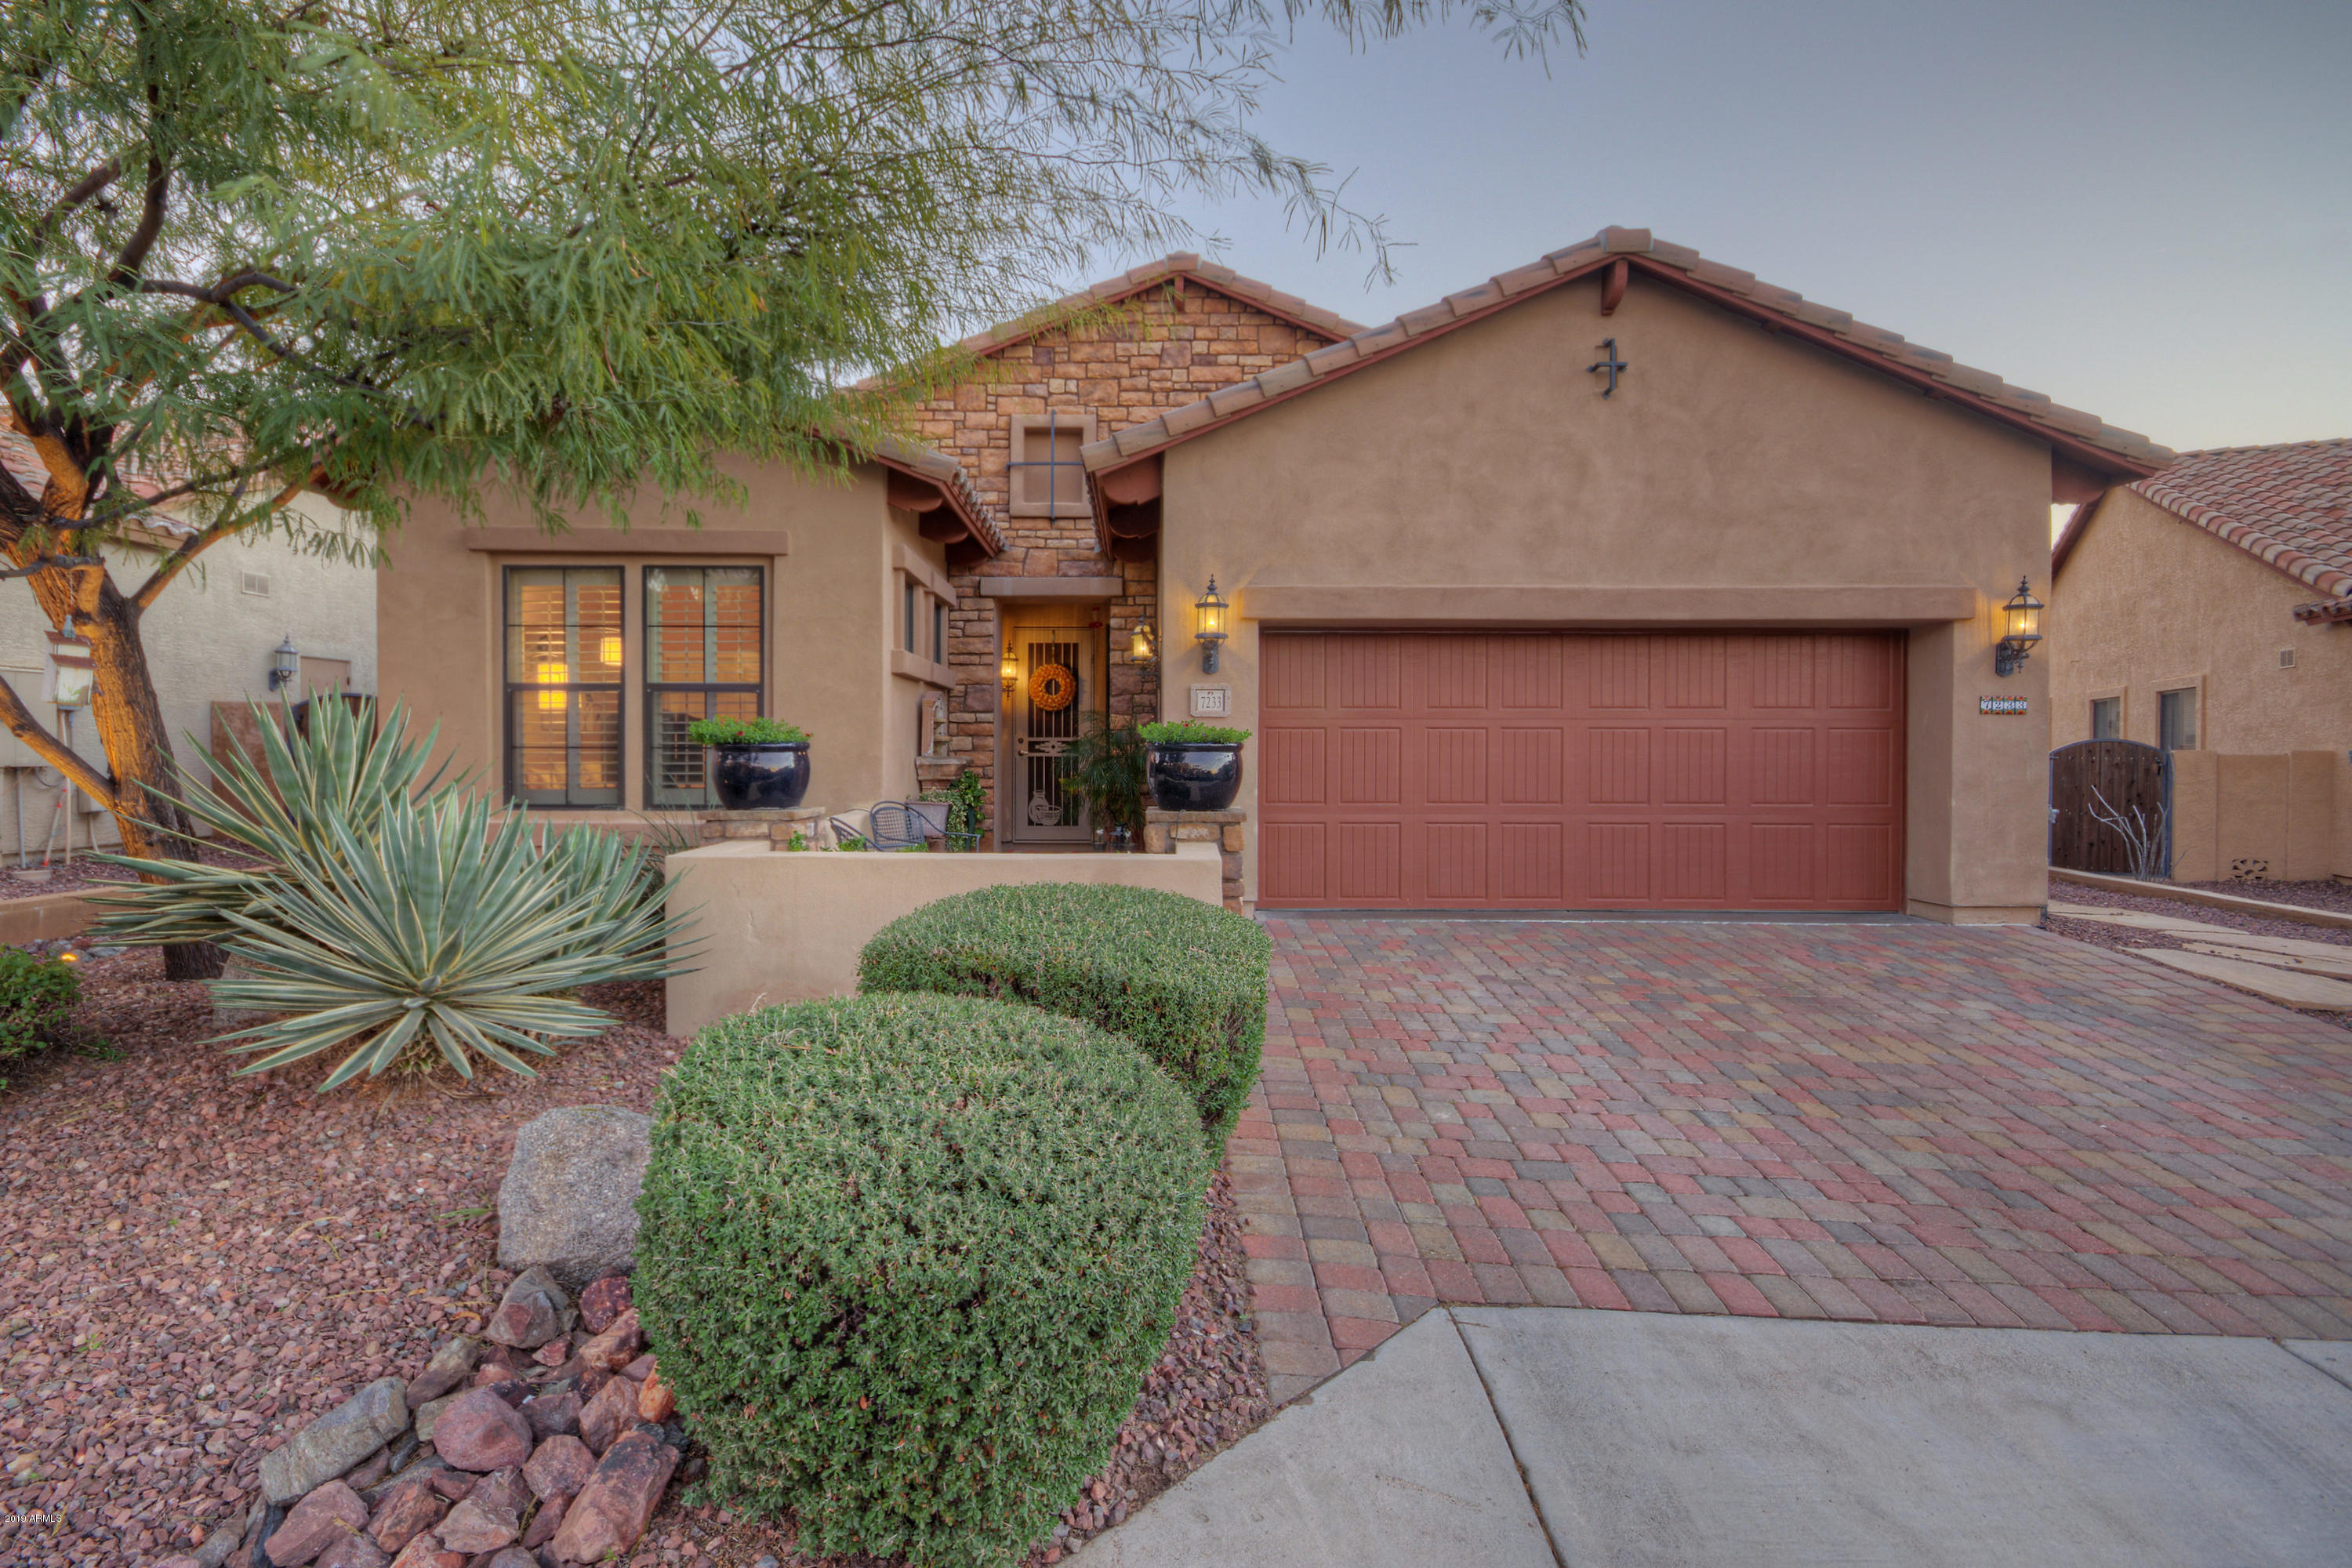 Photo of 7233 E NANCE Street, Mesa, AZ 85207